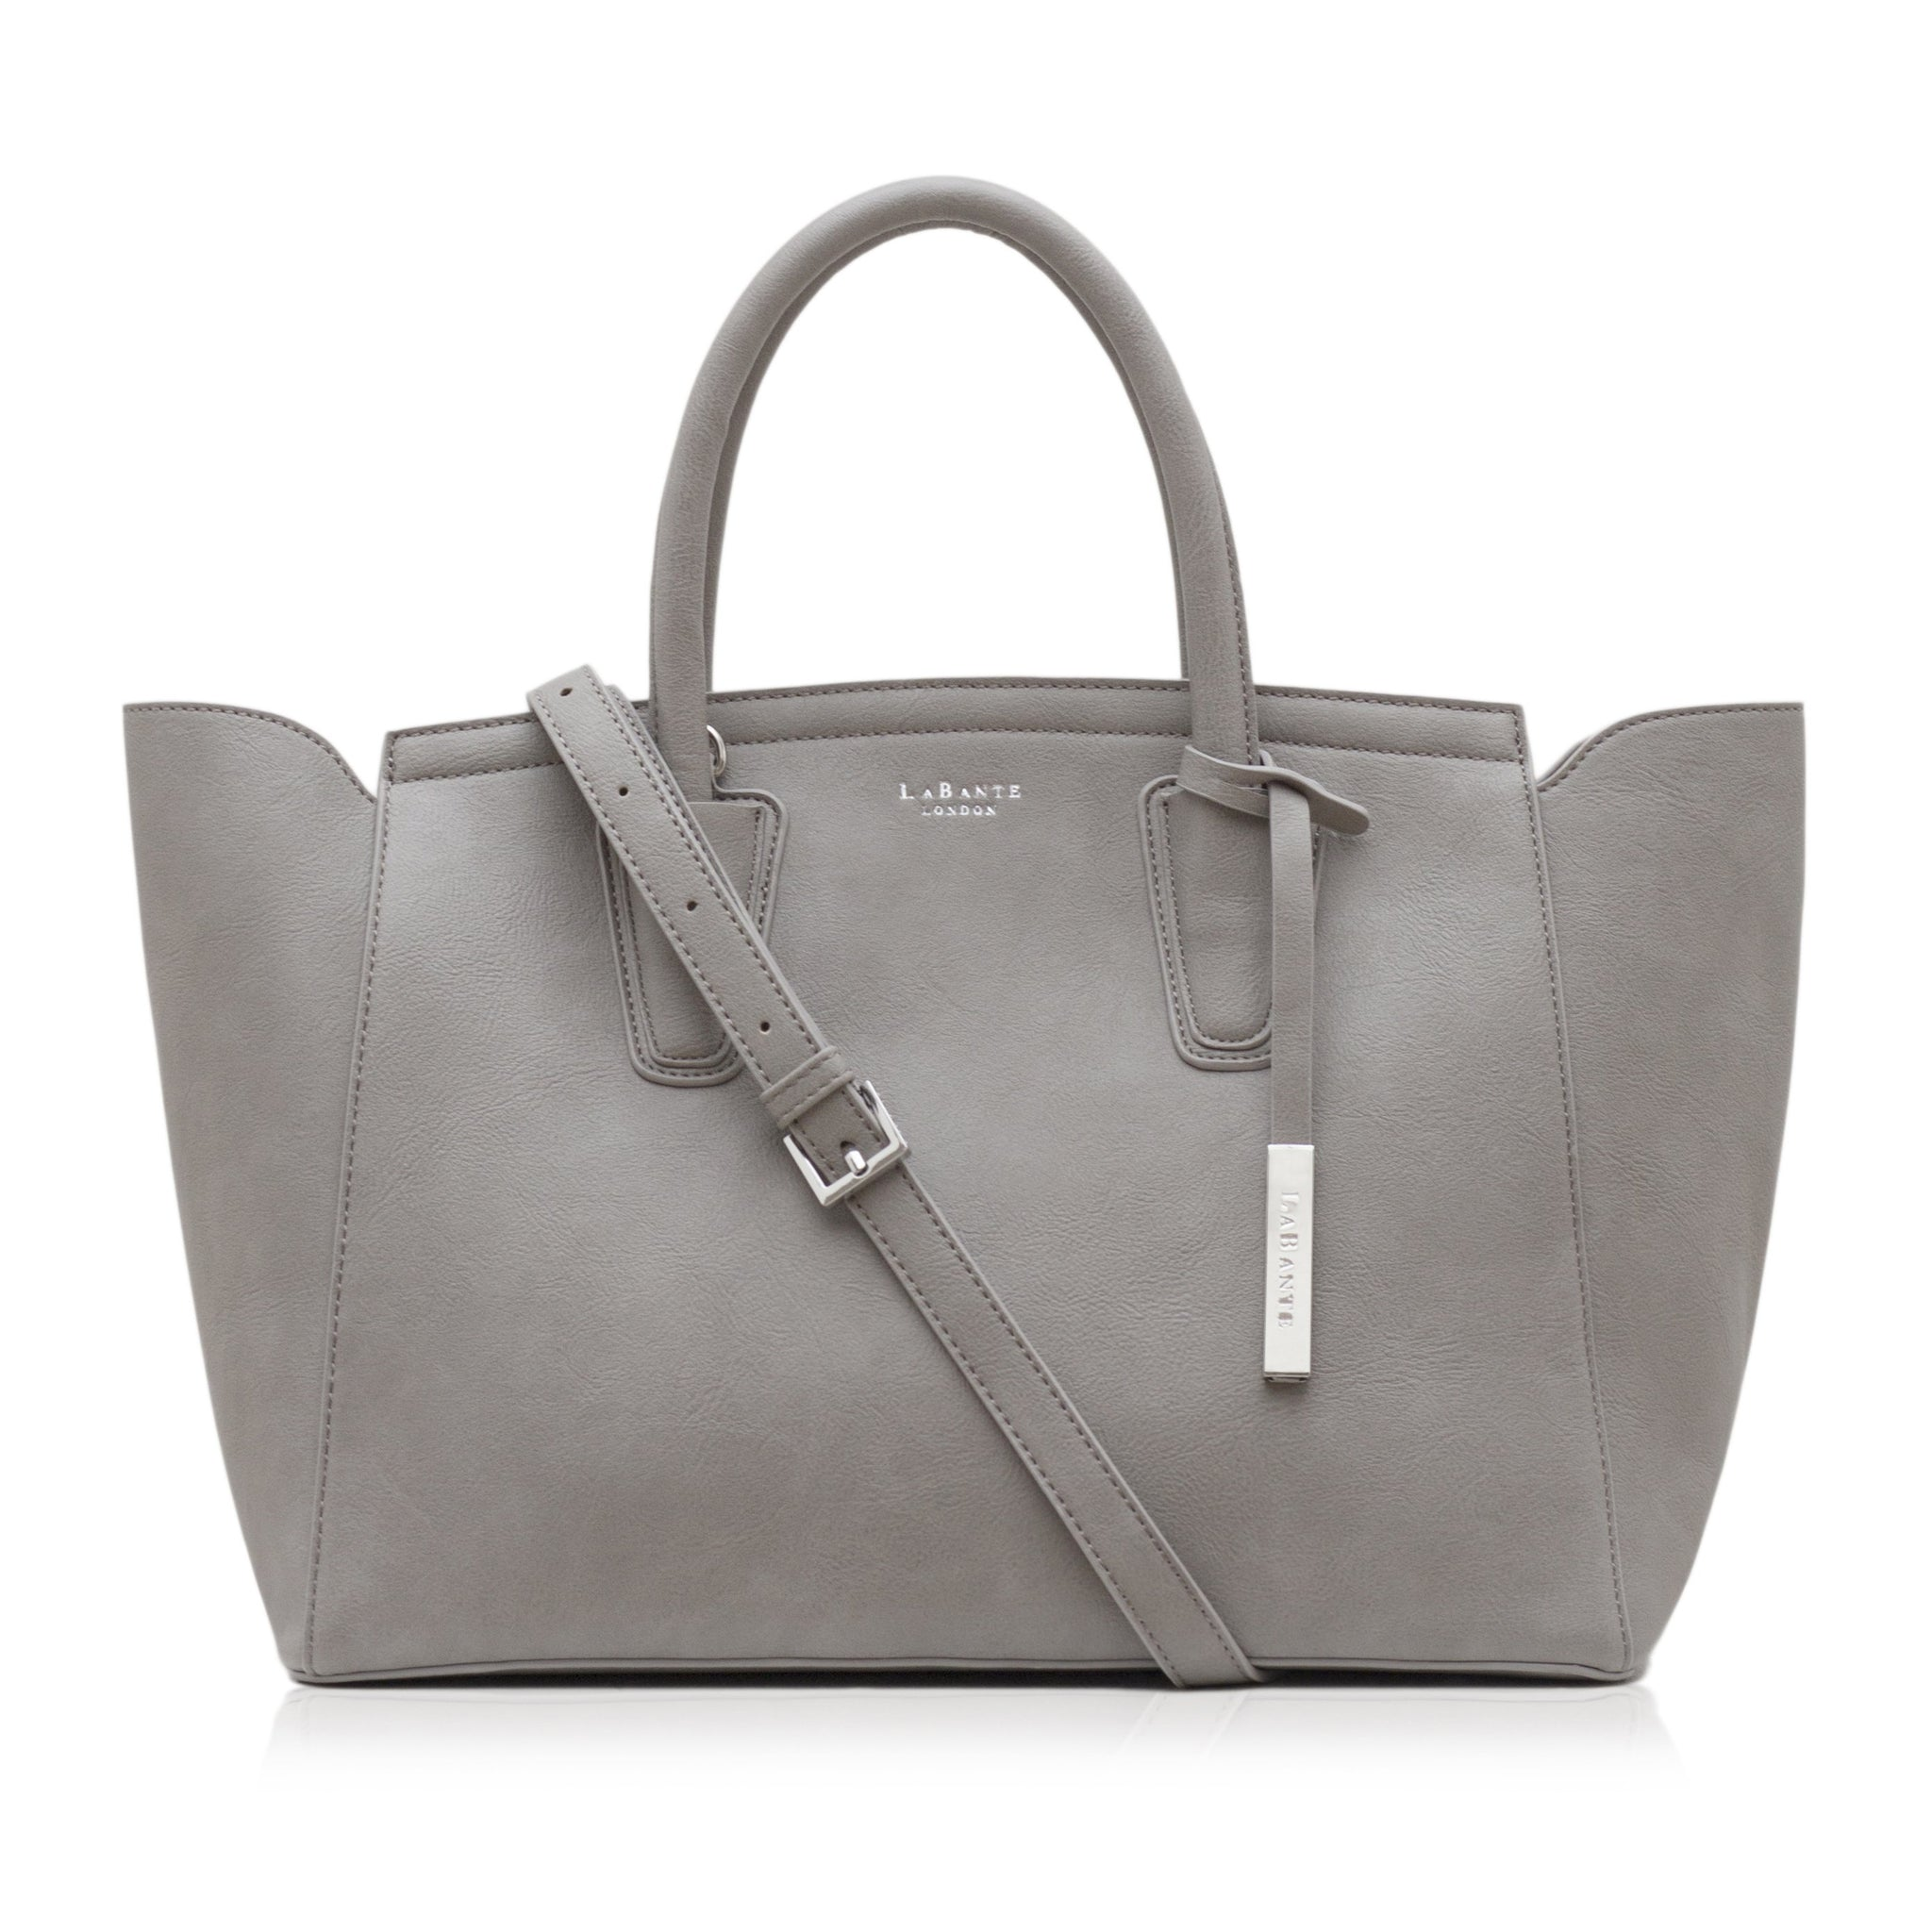 Grey - Grant Vegan structured tote bag, non leather tote bag